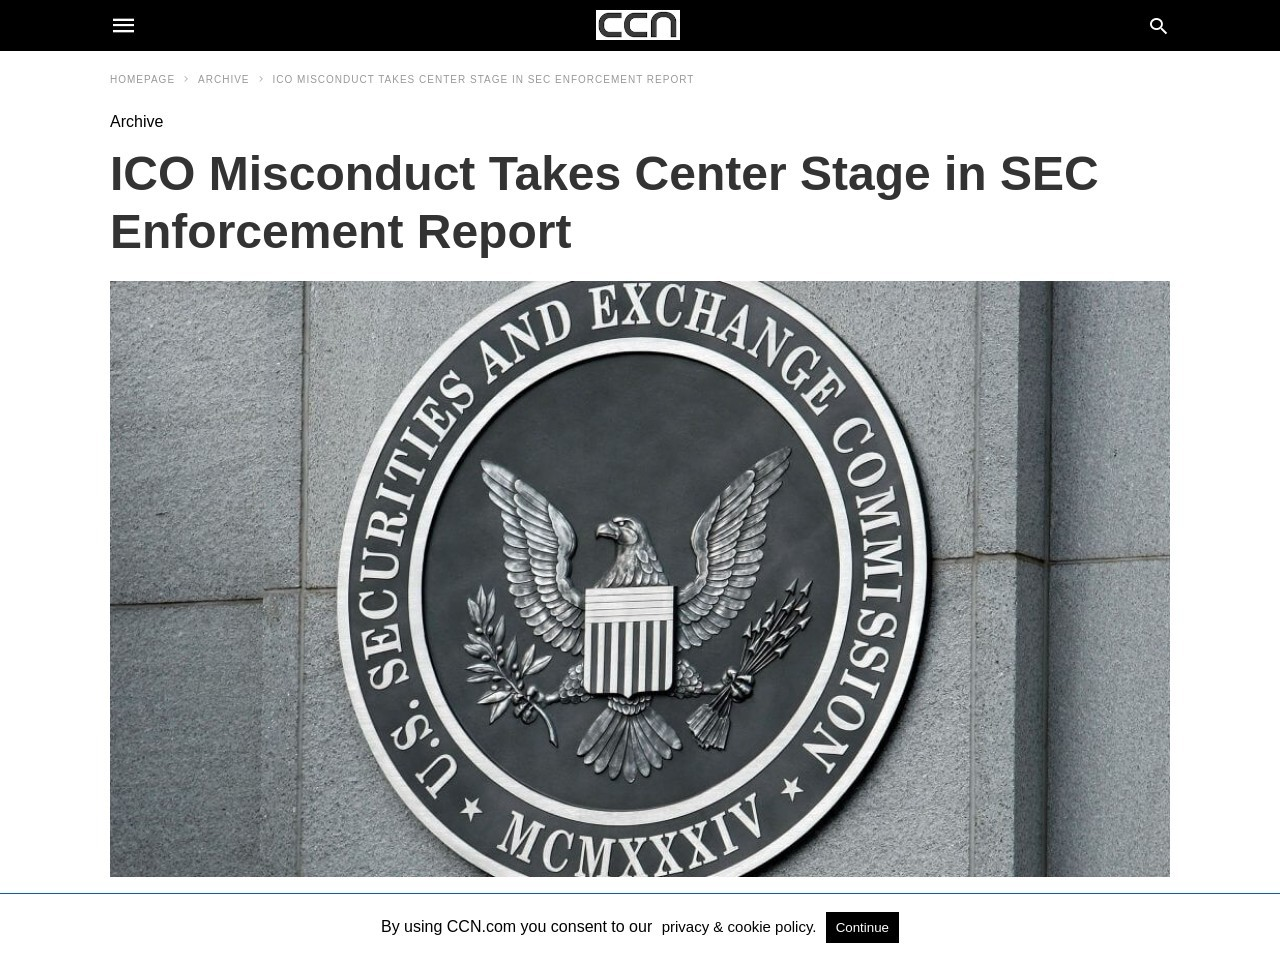 ICO Misconduct Takes Center Stage in SEC Enforcement Report